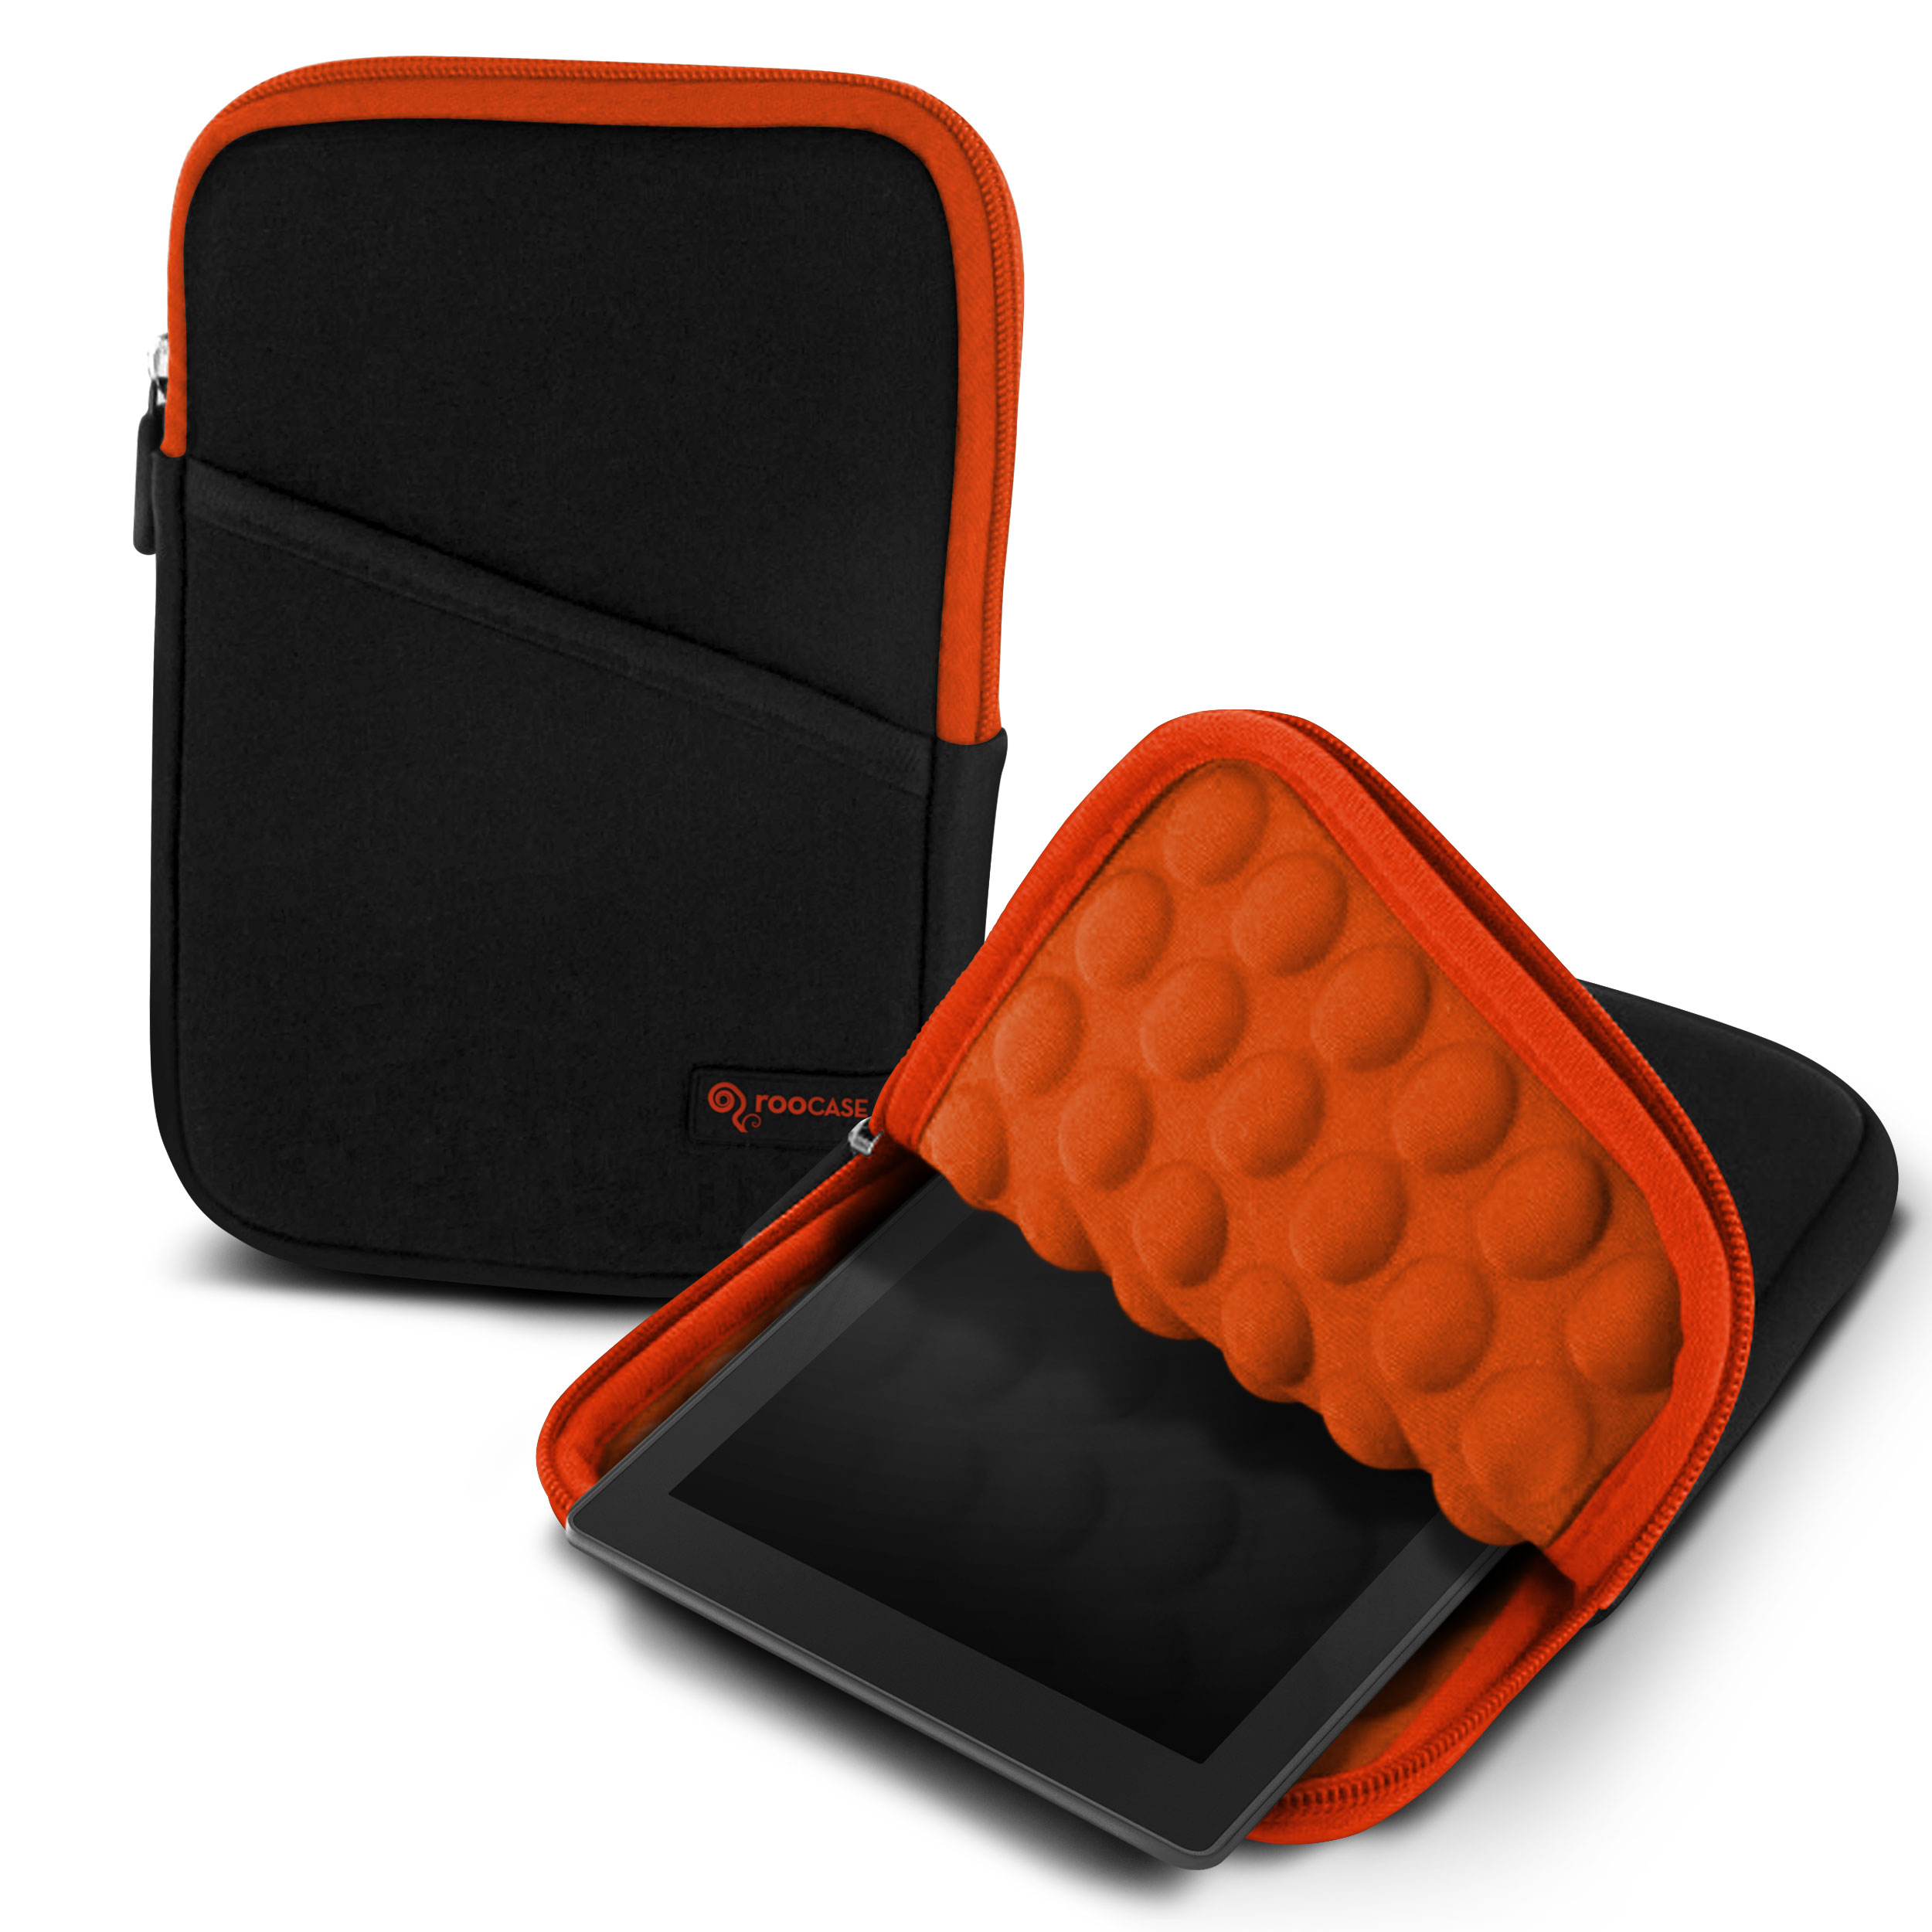 "roocase Bubble Sleeve Carrying Universal 7"" Tablet Case for iPad Mini Retina / Galaxy Tab 3 4 7.0 8.0 / Nexus 7 2013 / Asus MeMO Pad 7 ME173 ME176CX / HP 7 Slate Plus / Dell Venue Pro 7.0 8.0, Orange"